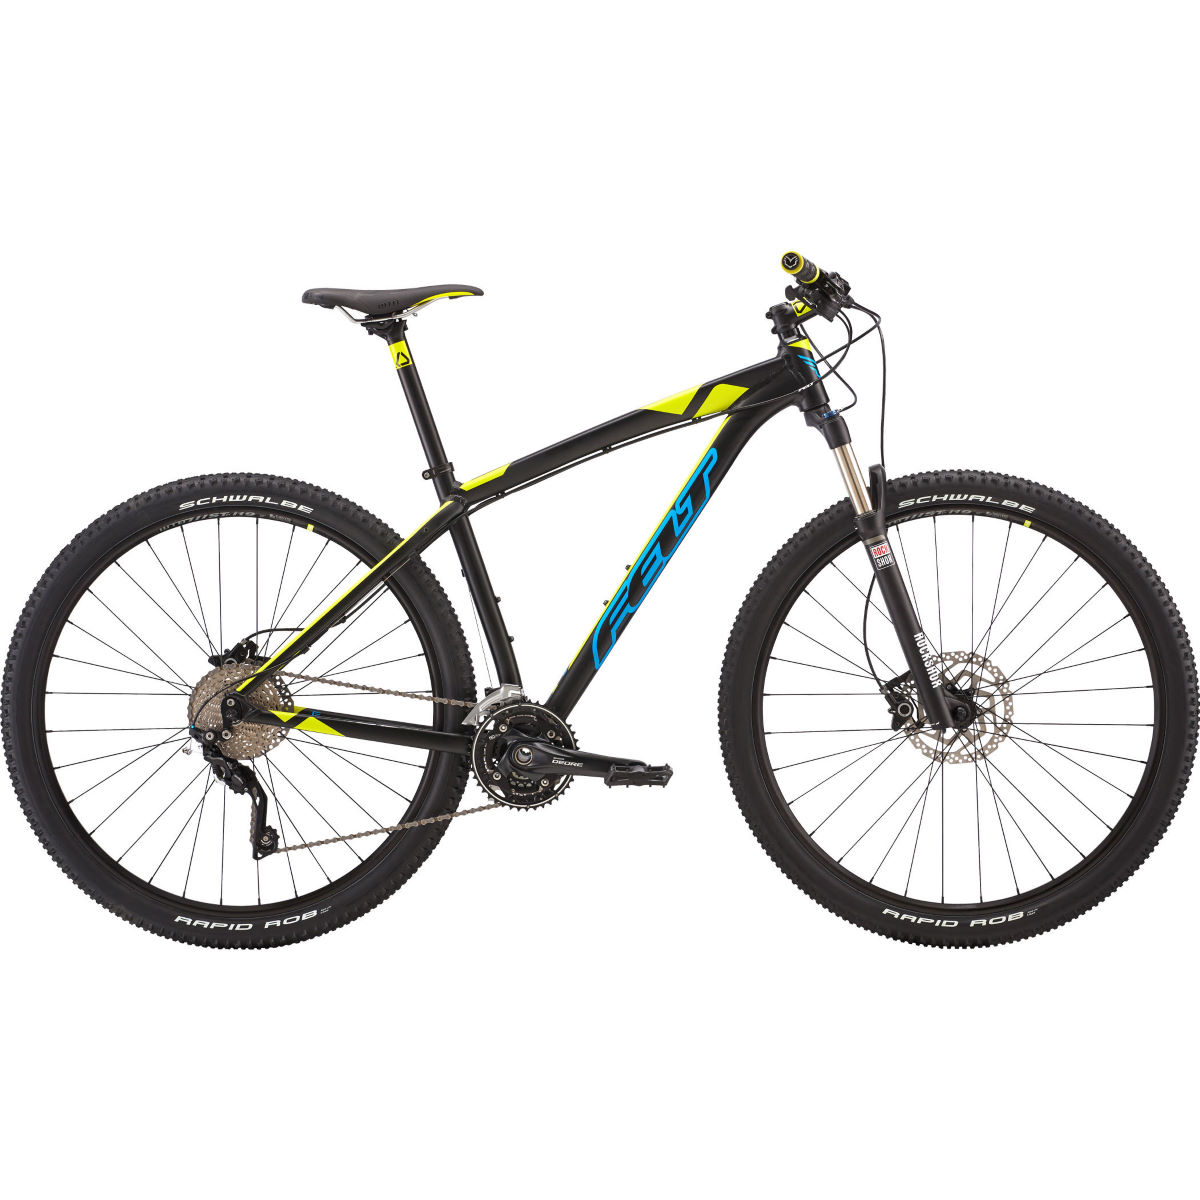 VTT Felt Nine 50 (2017) - 16'' Matte Black/Blue VTT semi-rigides